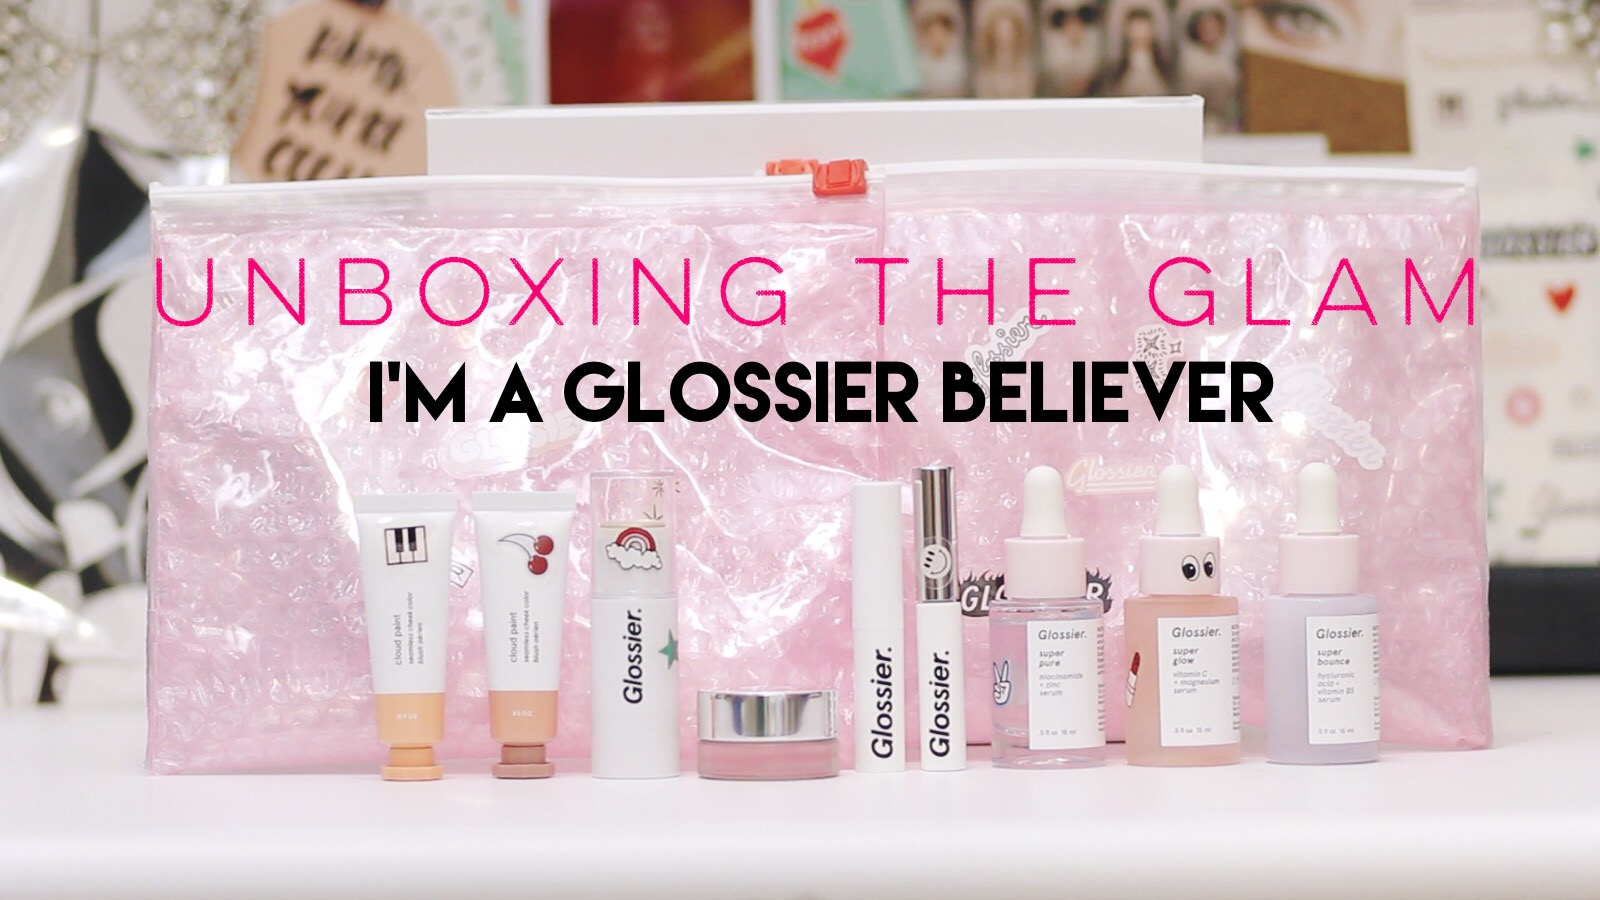 Ginger-Me-Glam-Unboxing-the-Glam-I-am-a-Glossier-Believer.jpg